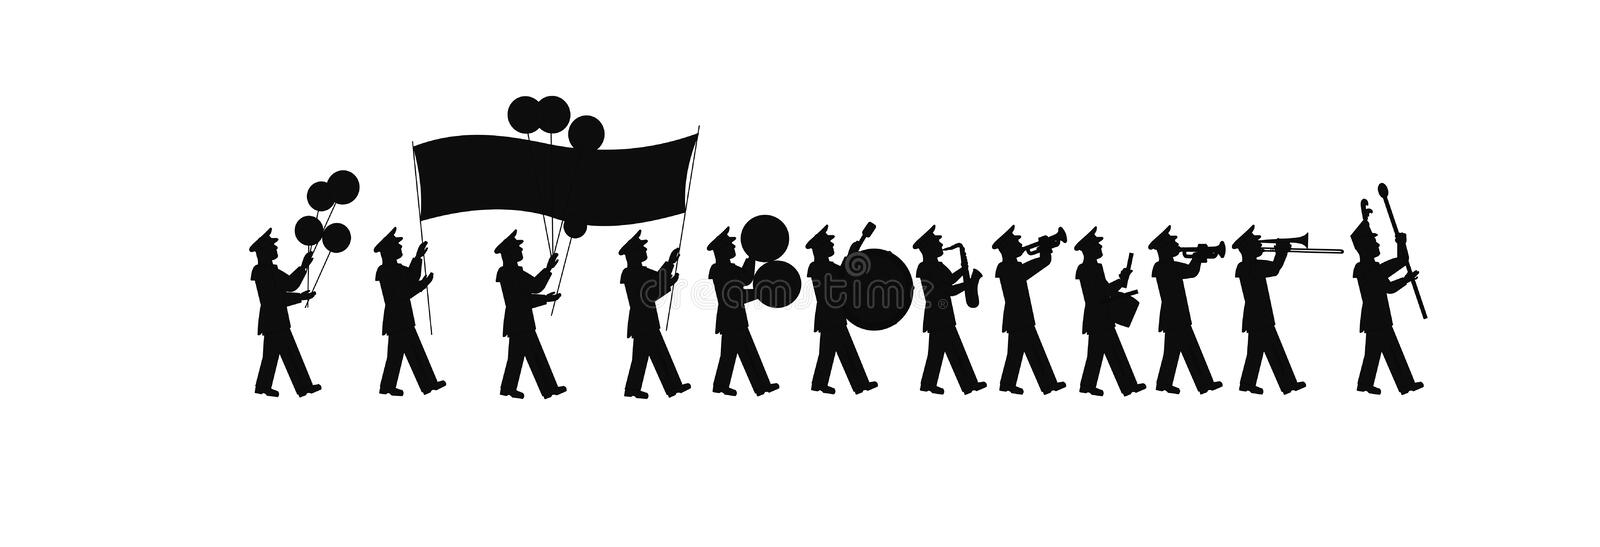 Large marching band in silhouette royalty free illustration